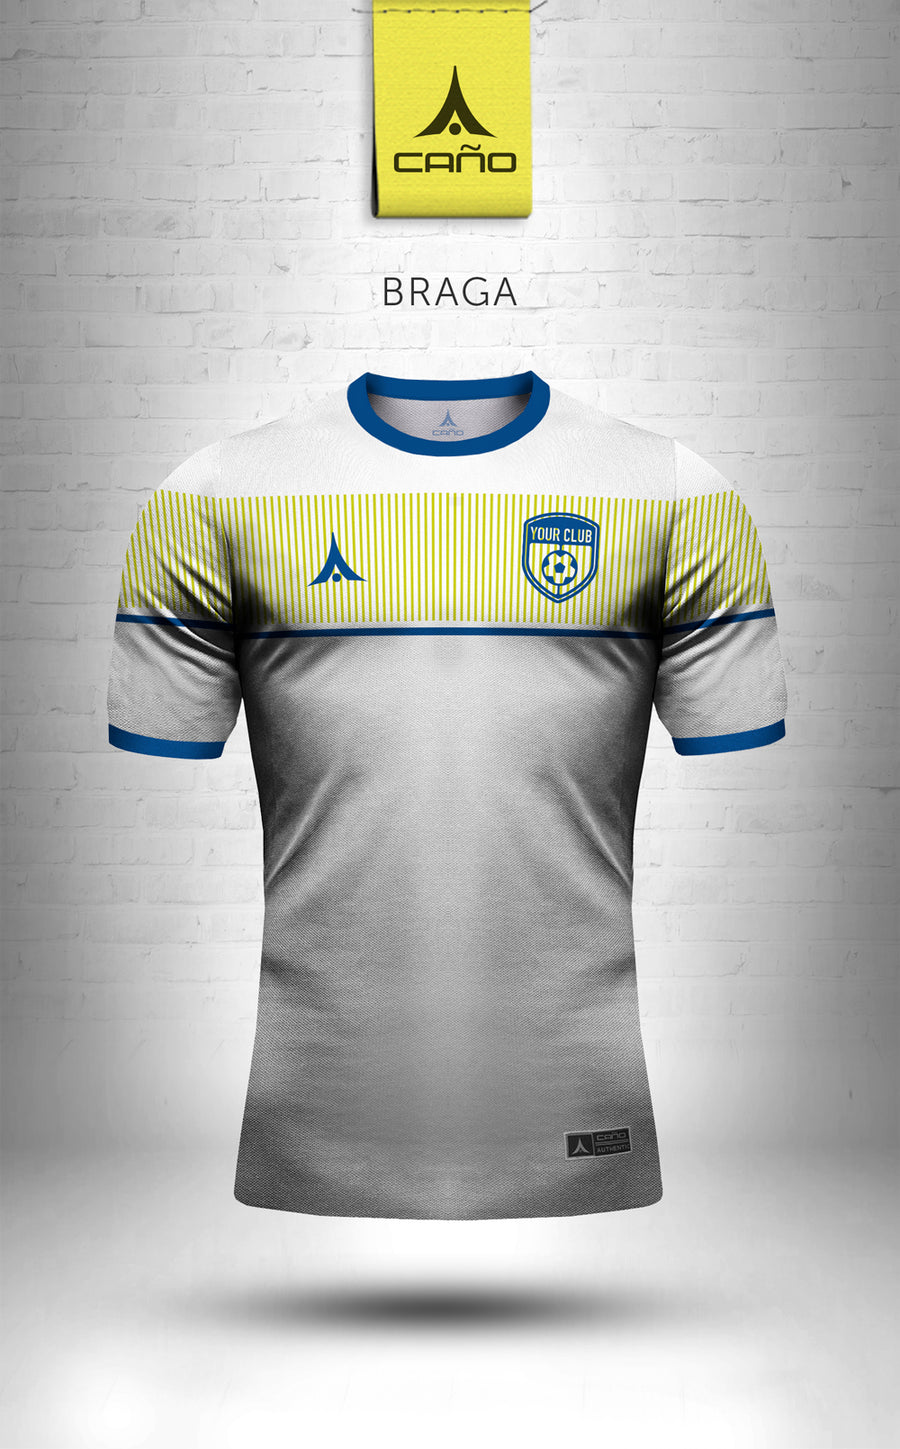 Braga in white